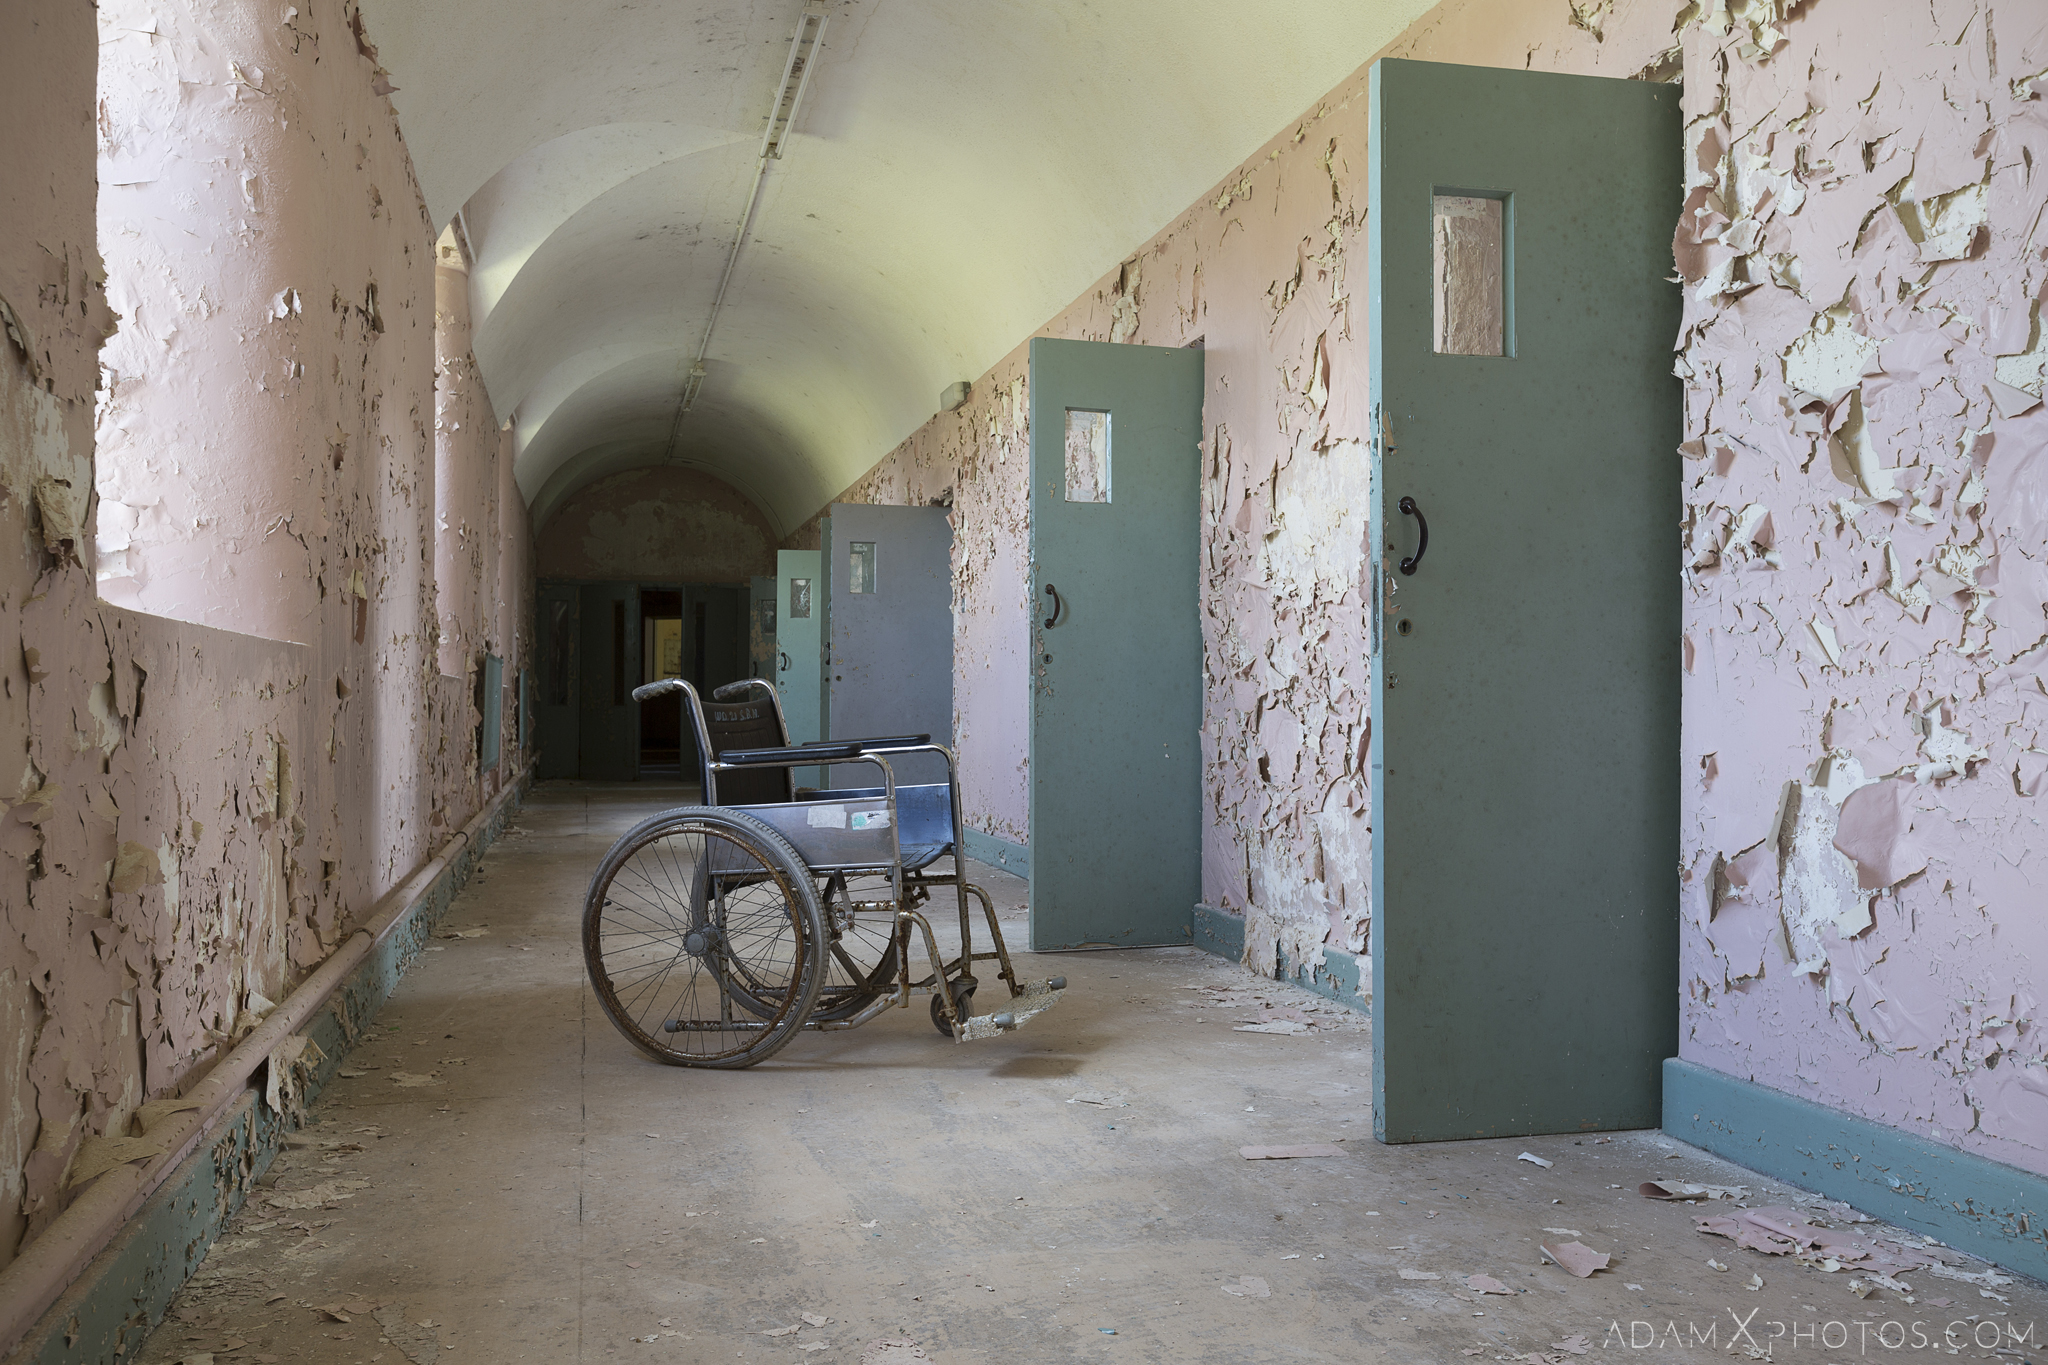 wheel chair peeling paint corridor cells Connacht District Lunatic Asylum St Brigid's Hospital Adam X Urbex Urban Exploration Ireland Ballinasloe Access 2017 Abandoned decay lost forgotten derelict location creepy haunting eerie